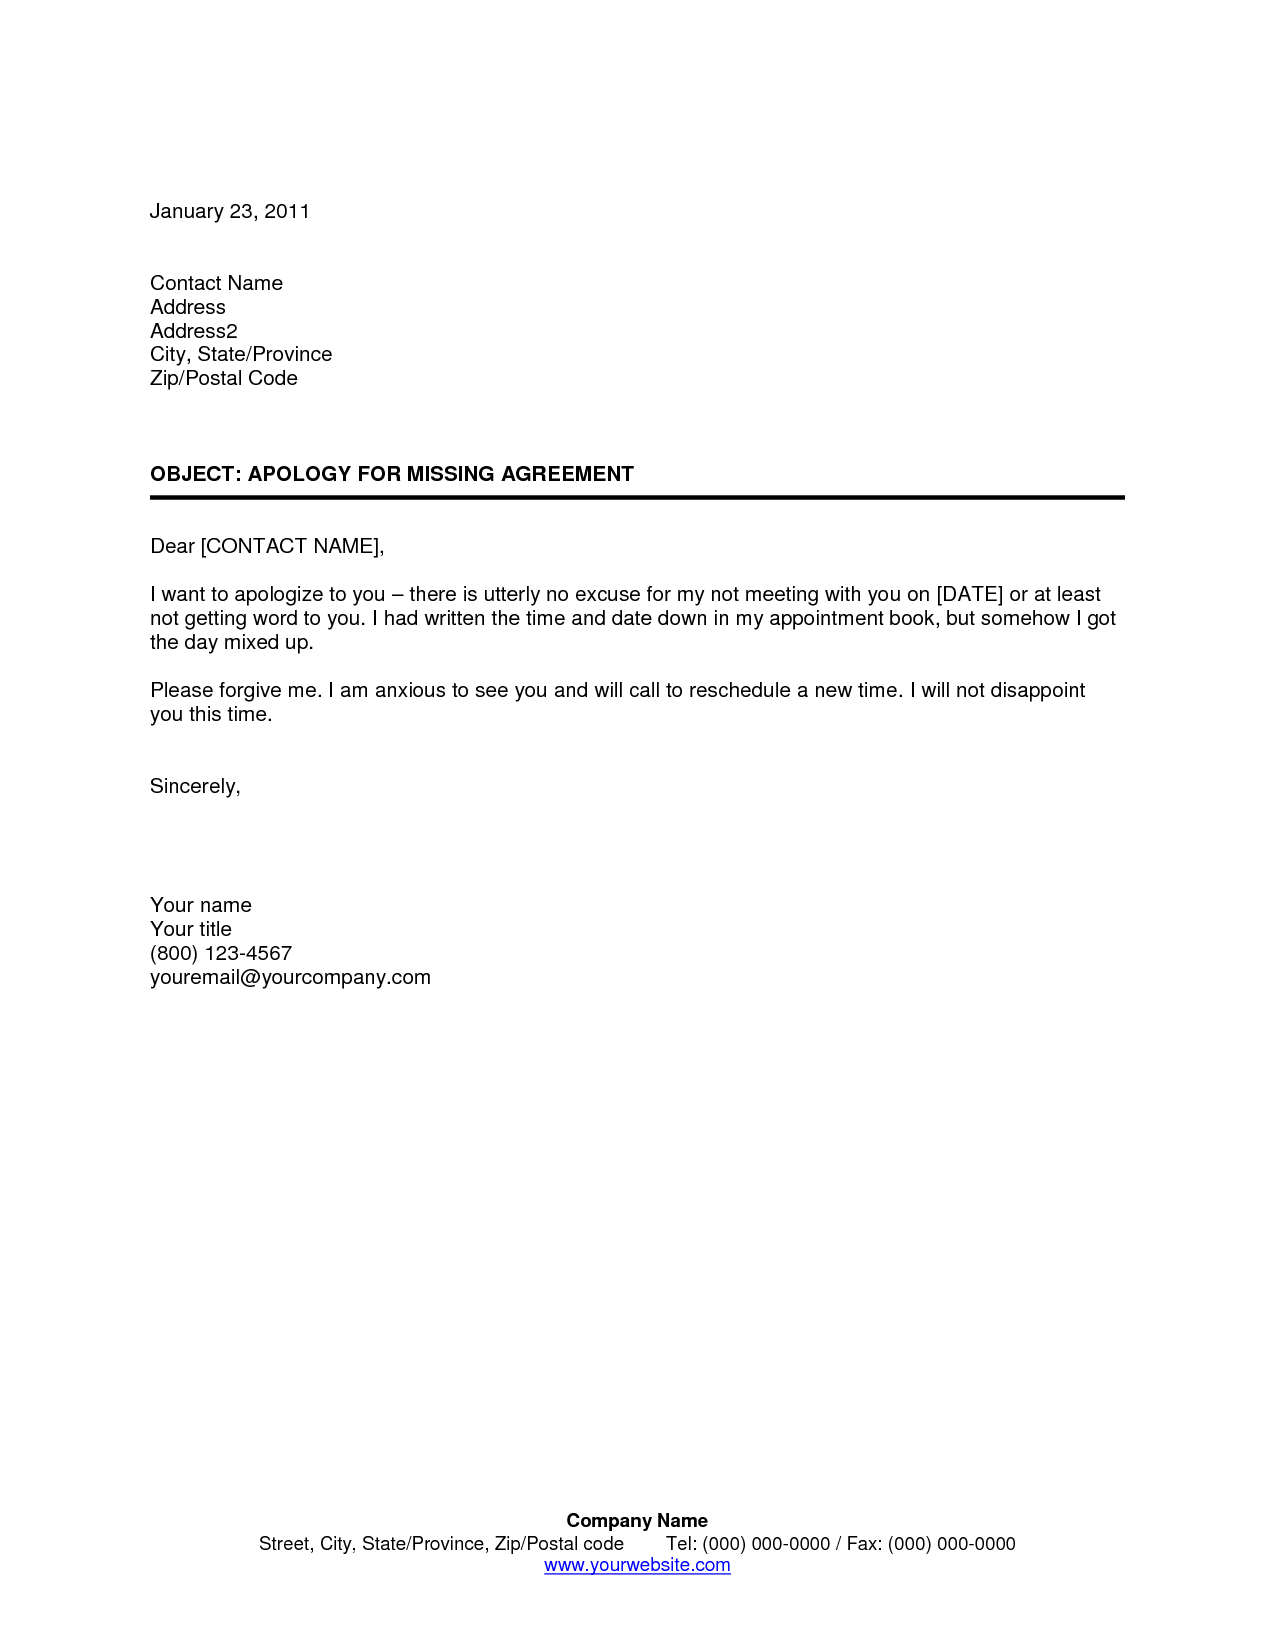 Apology Letters Simple Missed Appointment Letter Template Sample